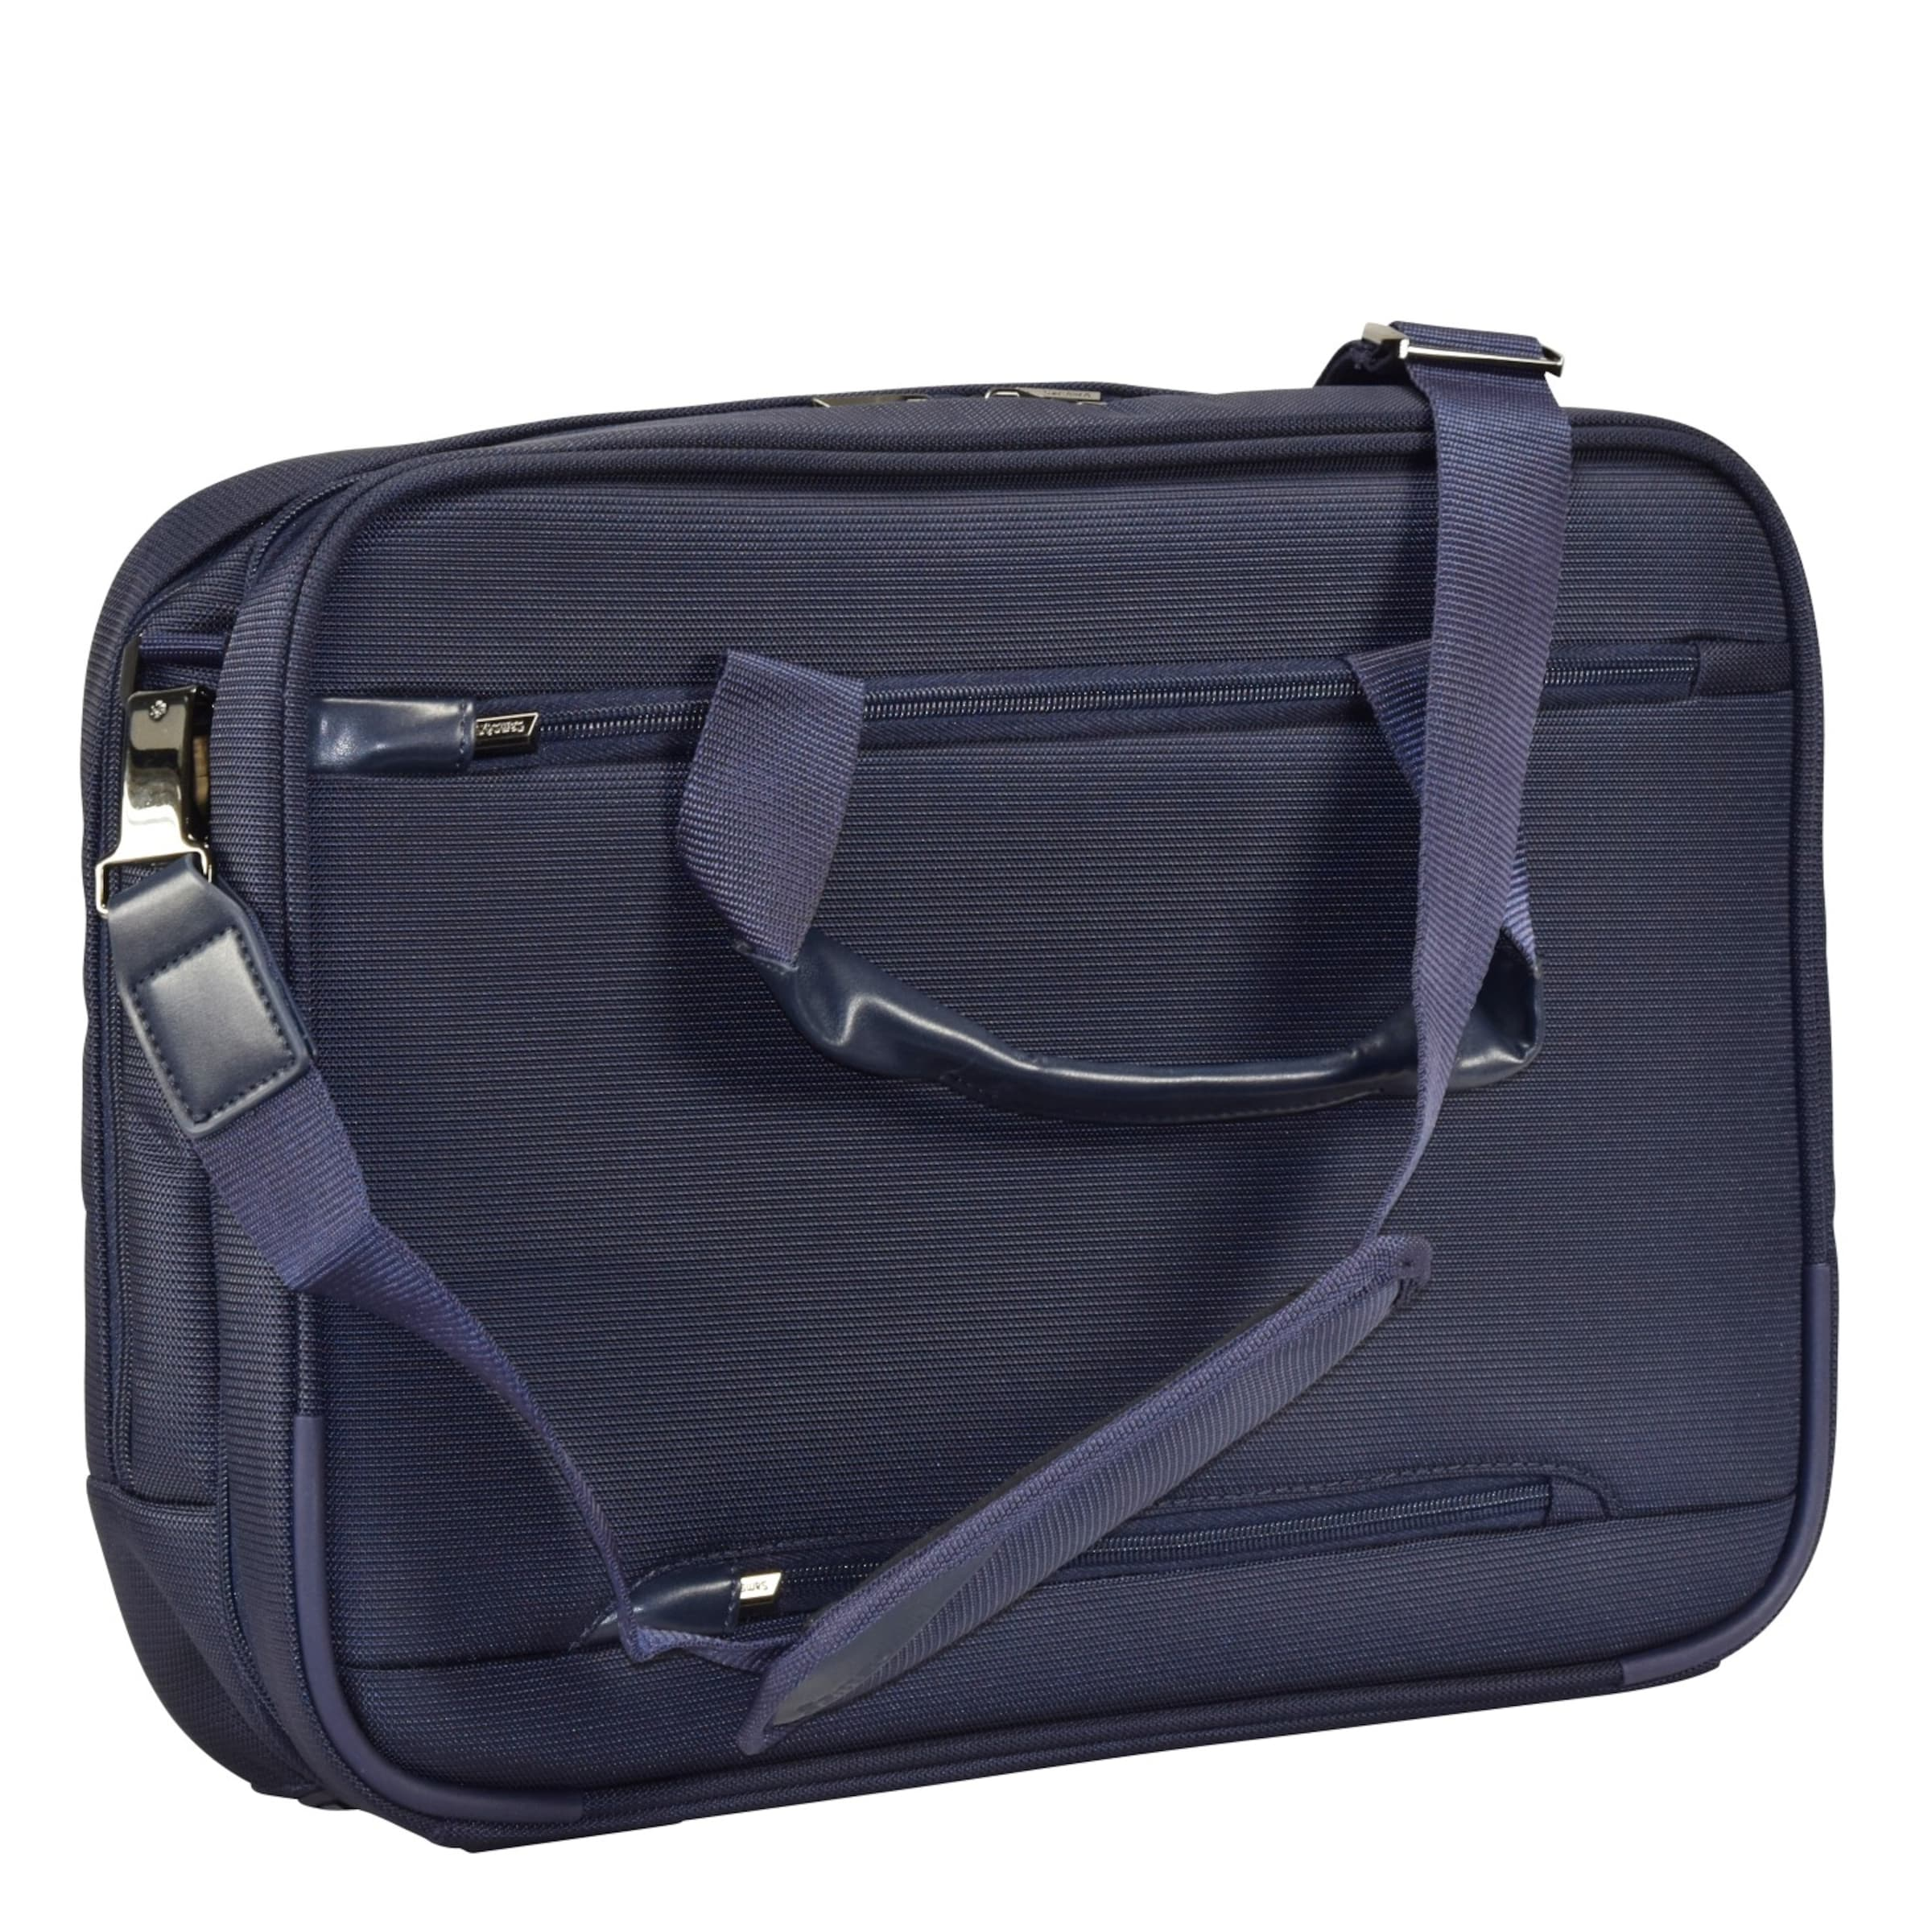 SAMSONITE XBR 44 cm XBR SAMSONITE Laptopfach Aktentasche dq6xxOZ